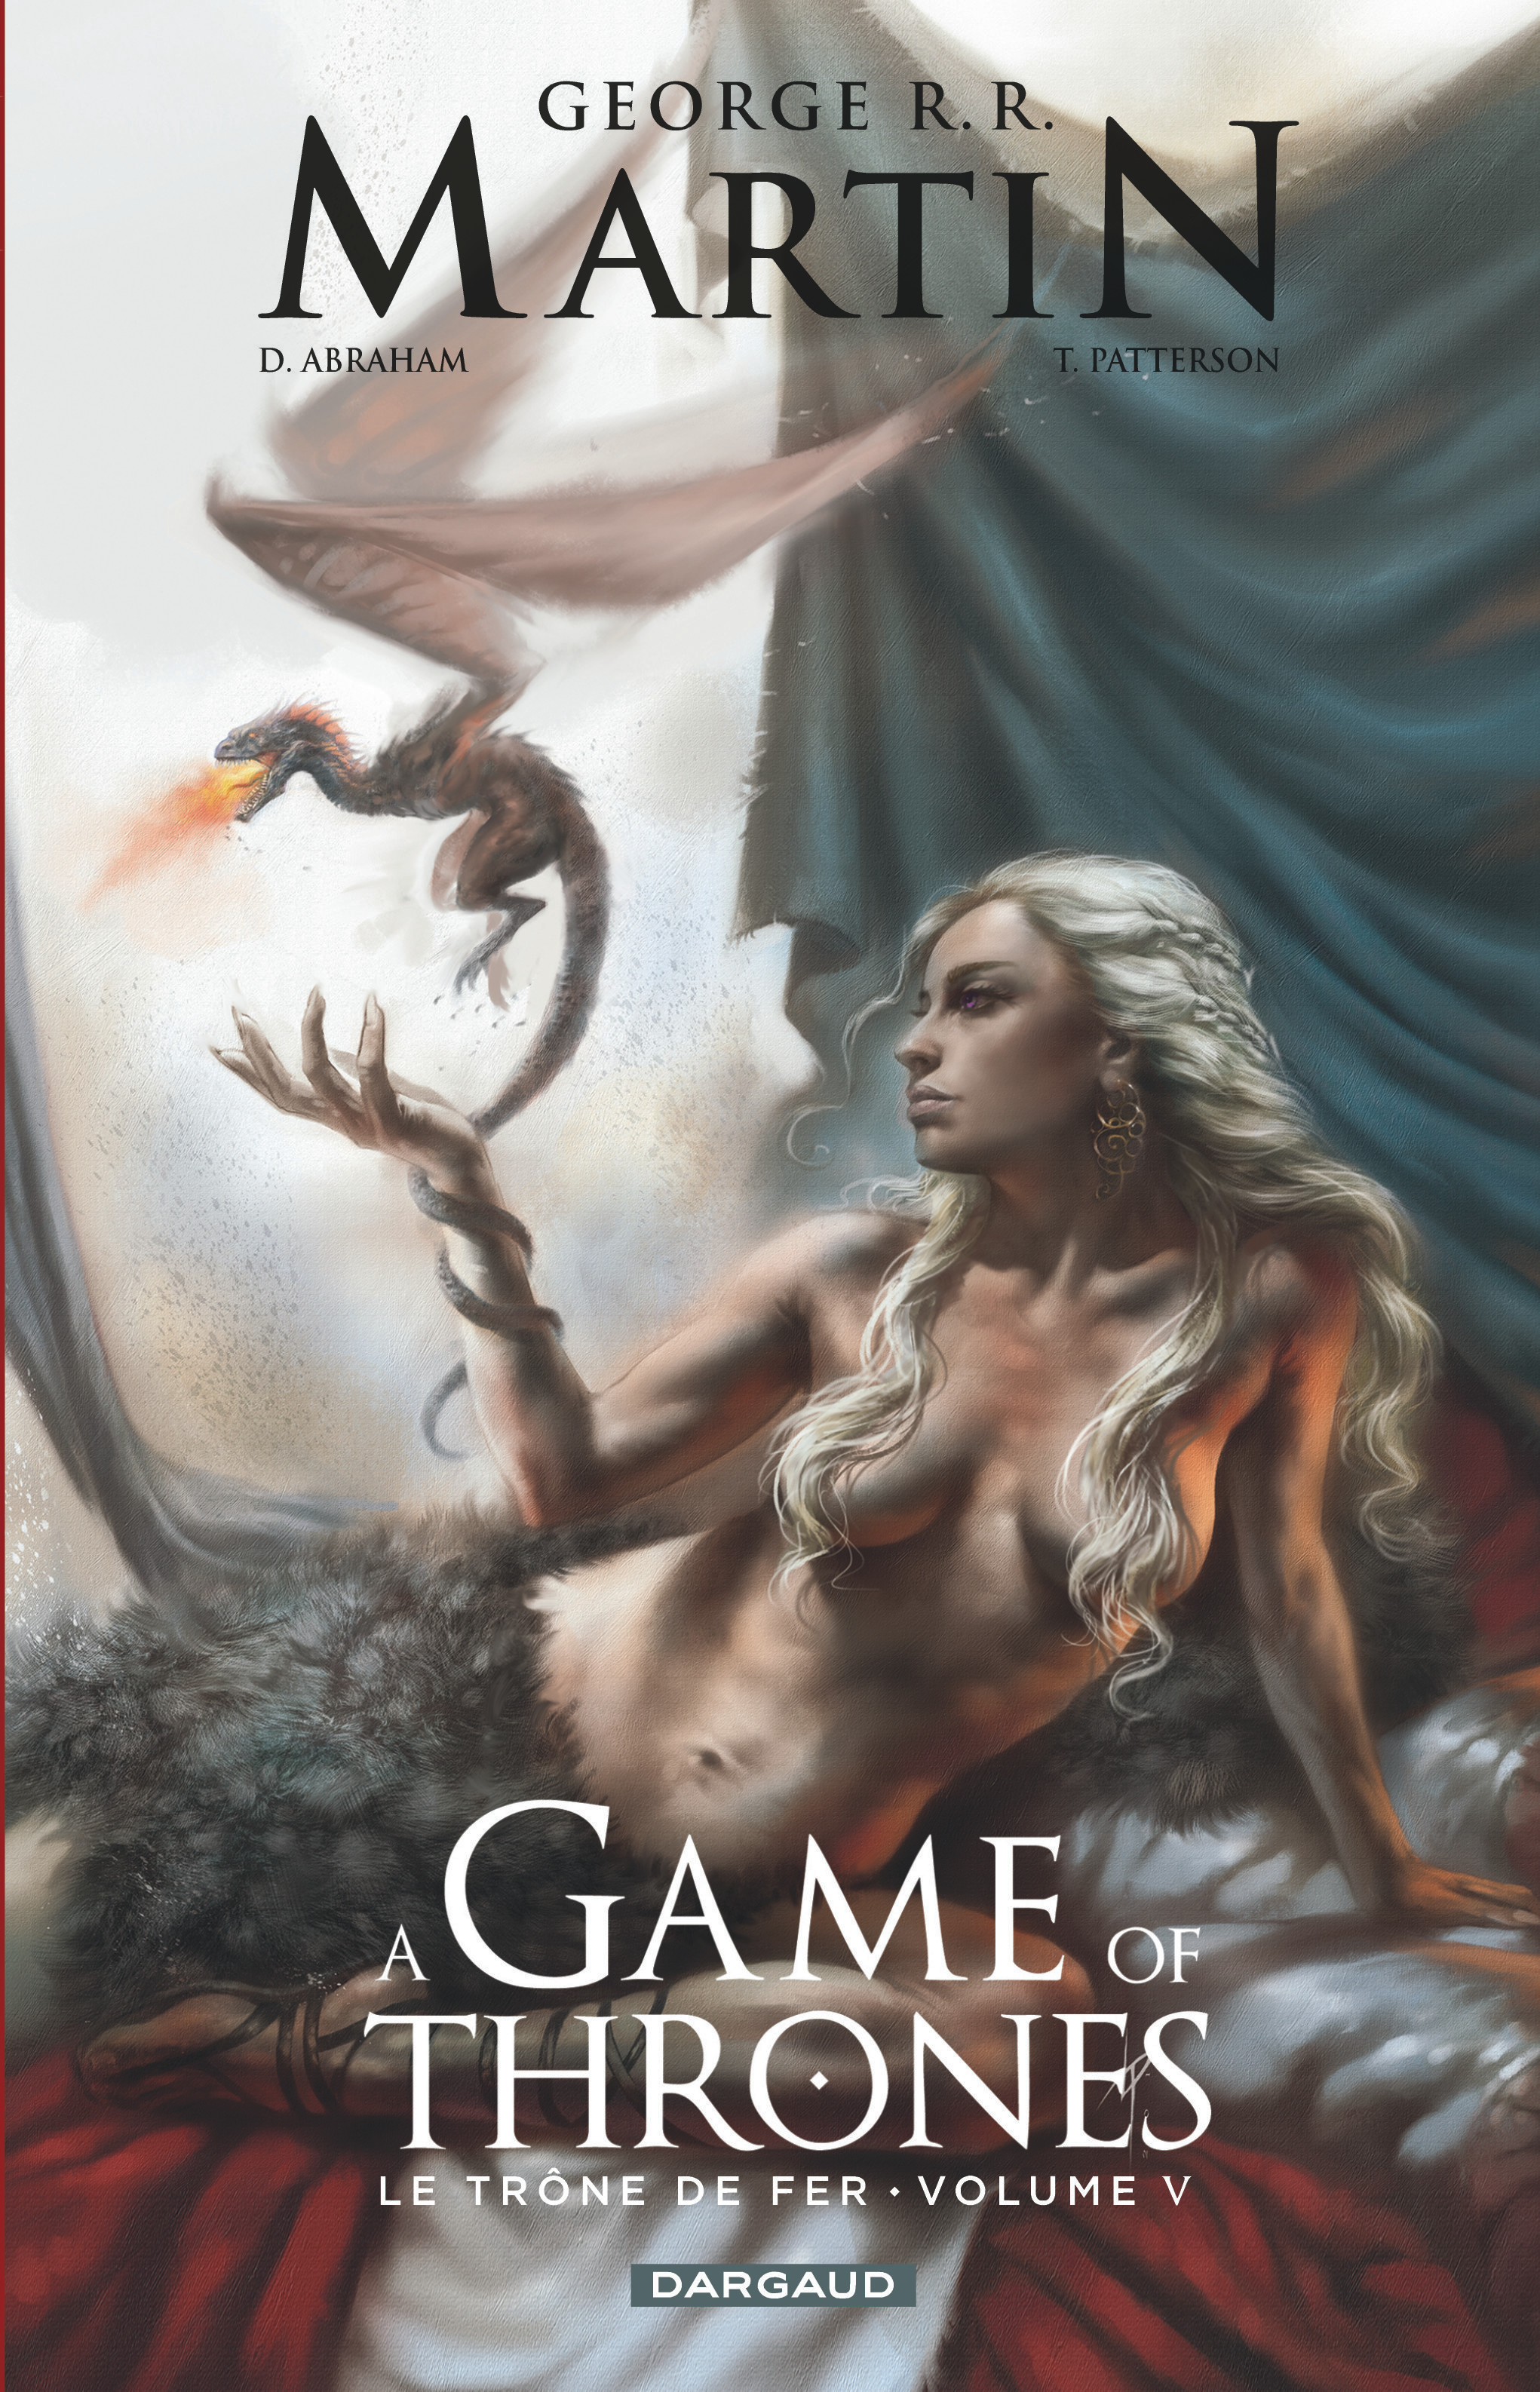 A GAME OF THRONES-LE TRONE FER - GAME OF THRONES (A) - LE TRONE DE FER - TOME 5 - A GAME OF THRO